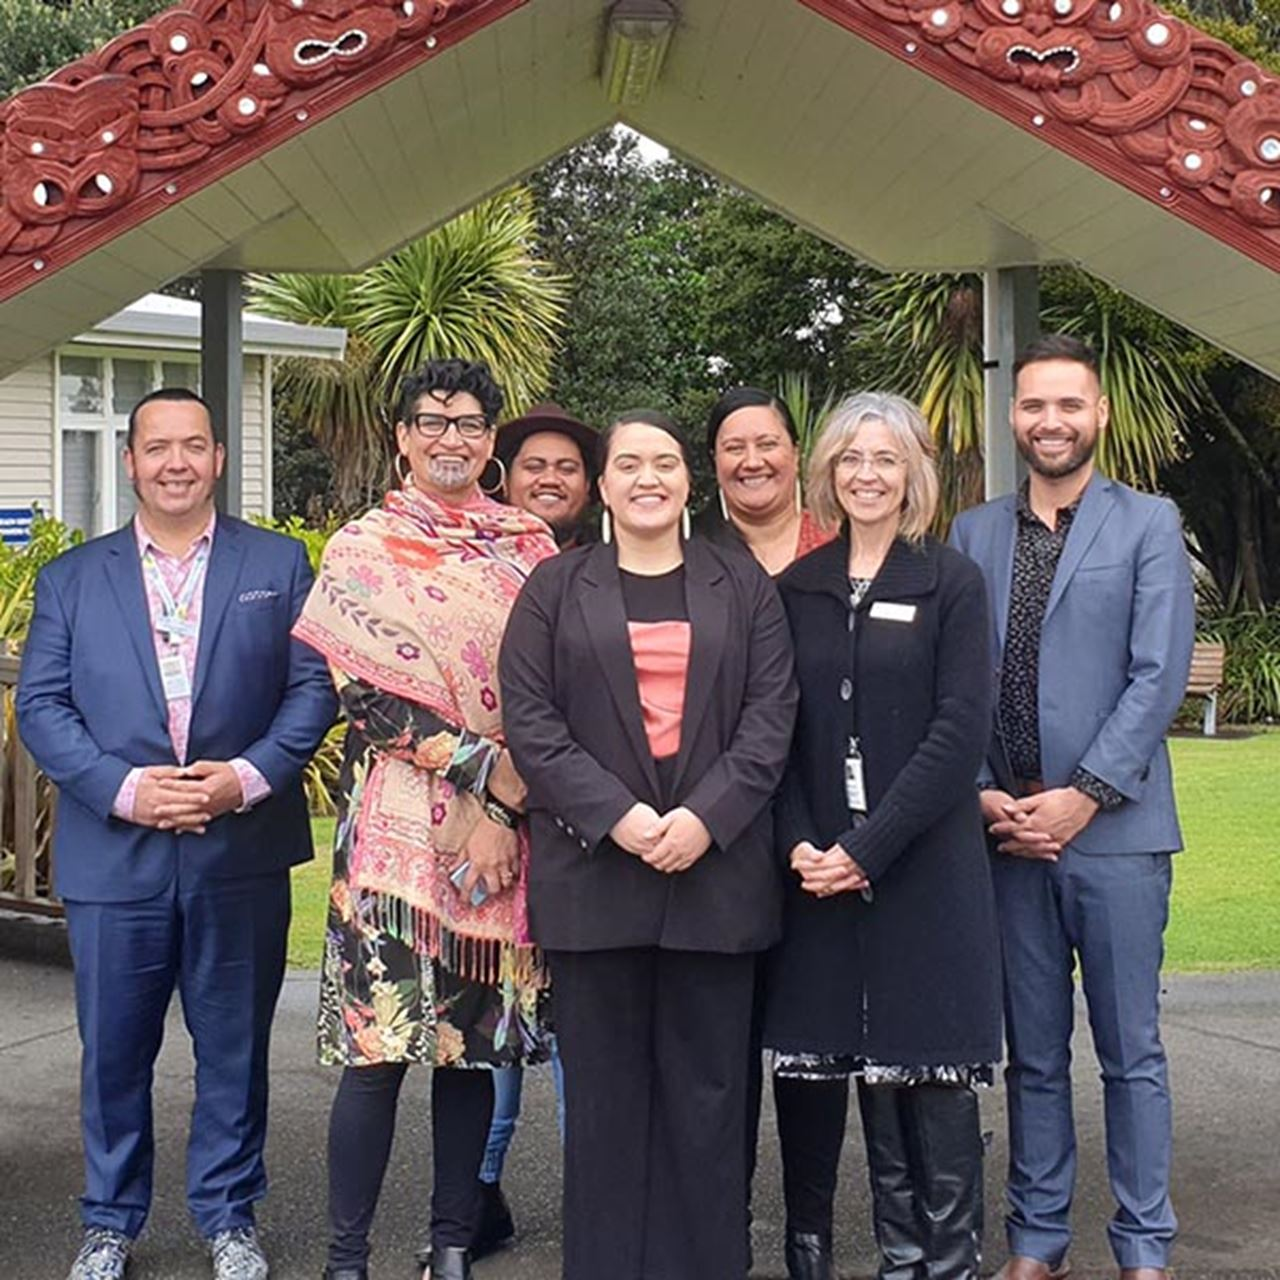 Pictured above from left: Pou Tikanga Māori Health Gains and Development Graham Cameron, General Manager Māori Health Gains and Development Tricia Keelan, Awanuiārangi Kaiako Tahupotiki Taiaroa-Scott, Ani Black, Awanuiārangi Project Lead Rachel Wetere, BOPDHB CE Helen Mason and Awanuiārangi Kaiako Rapaera Tāwhai